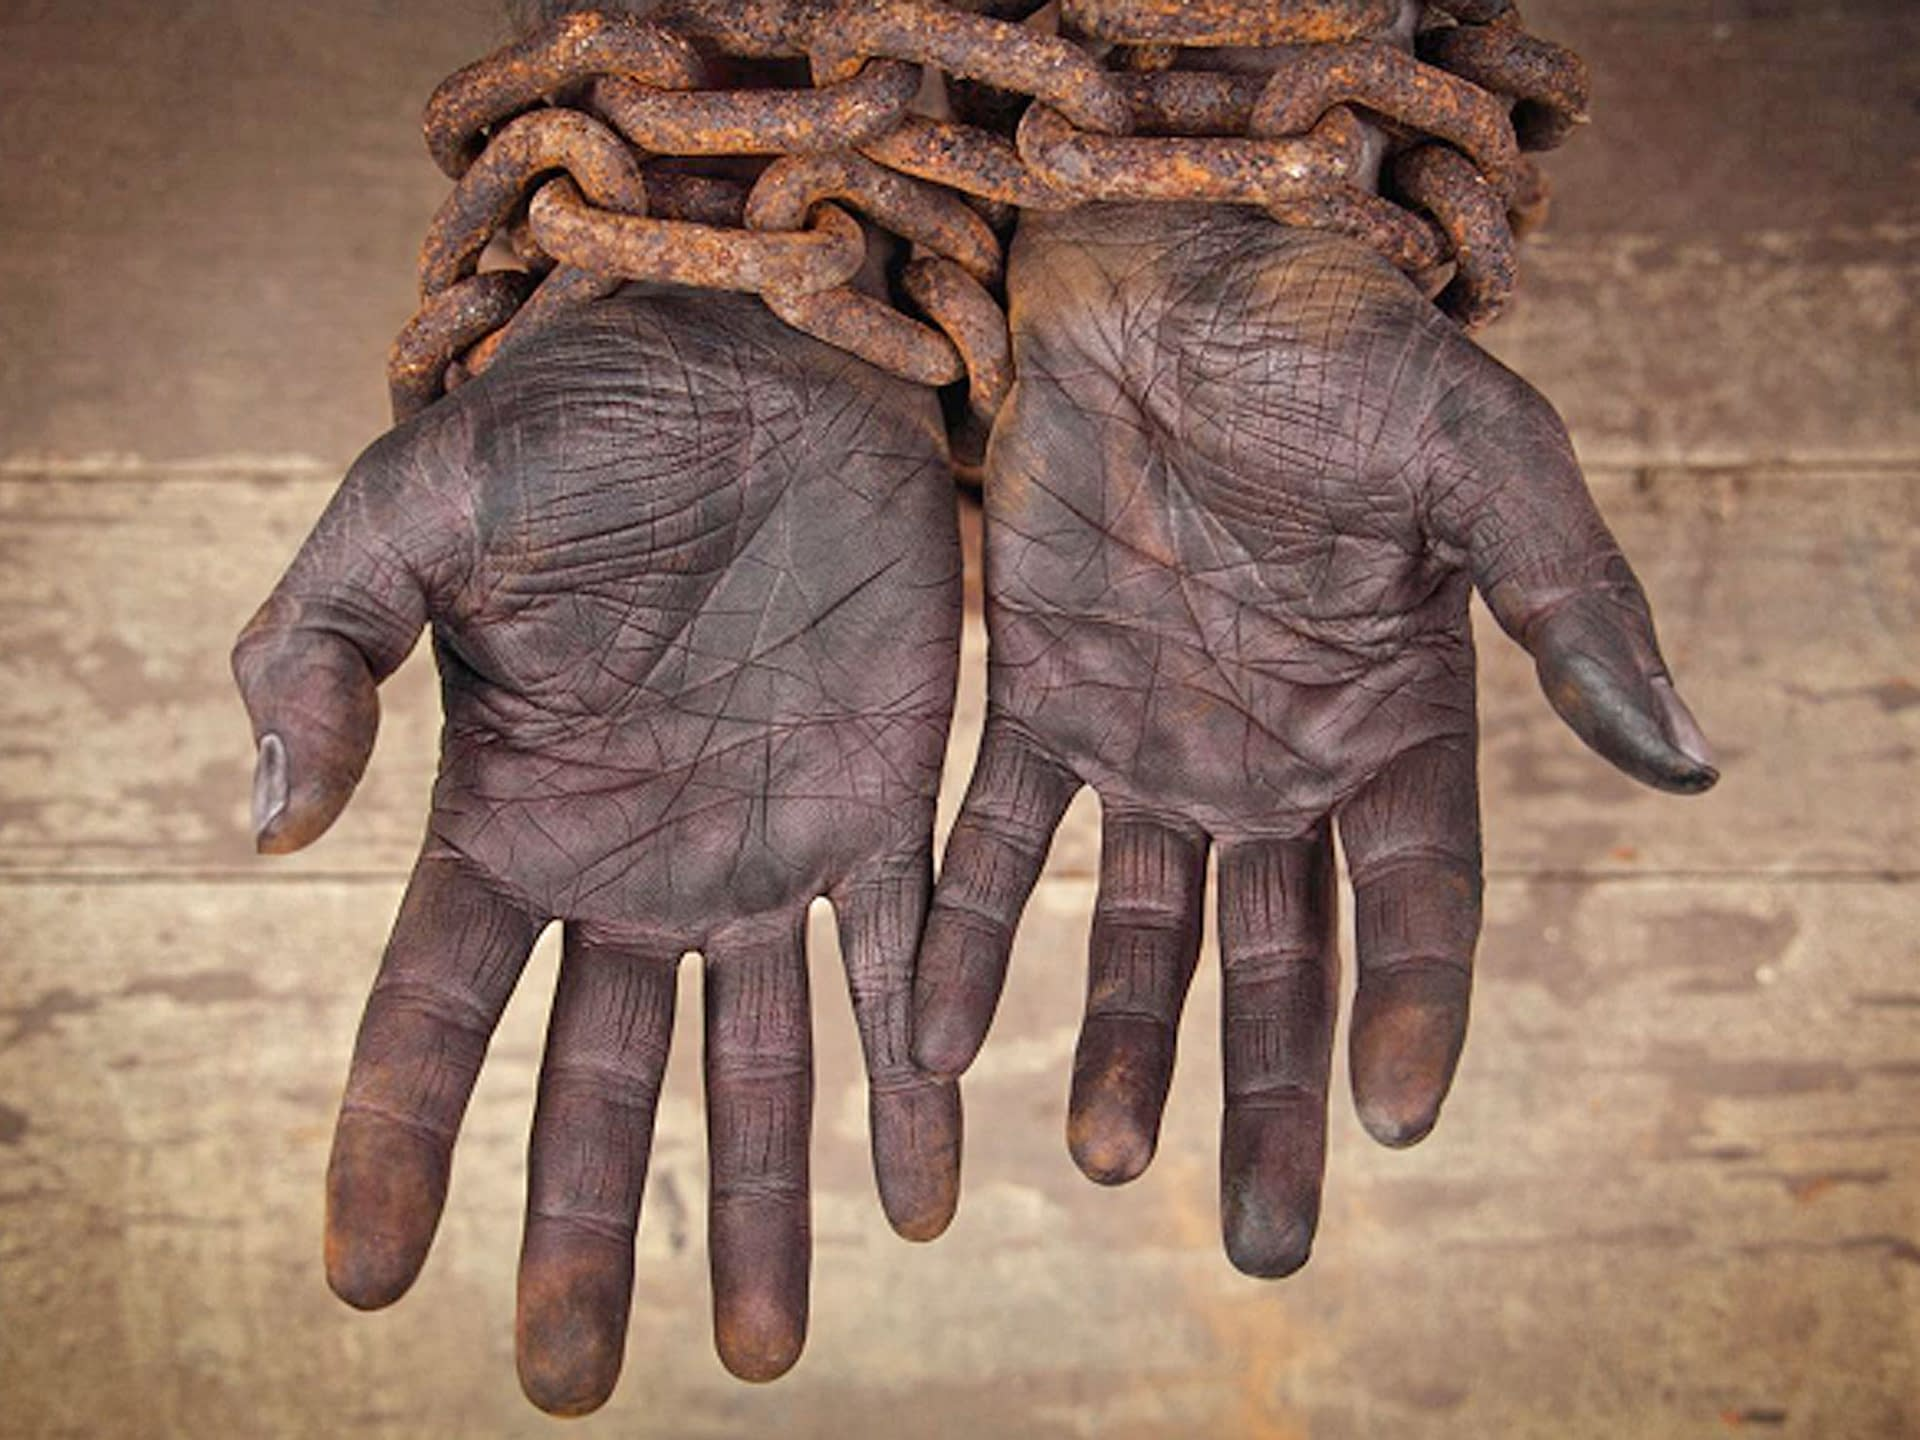 http://www.petercliffordonline.com/the-obscenity-of-modern-slavery-and-abuse